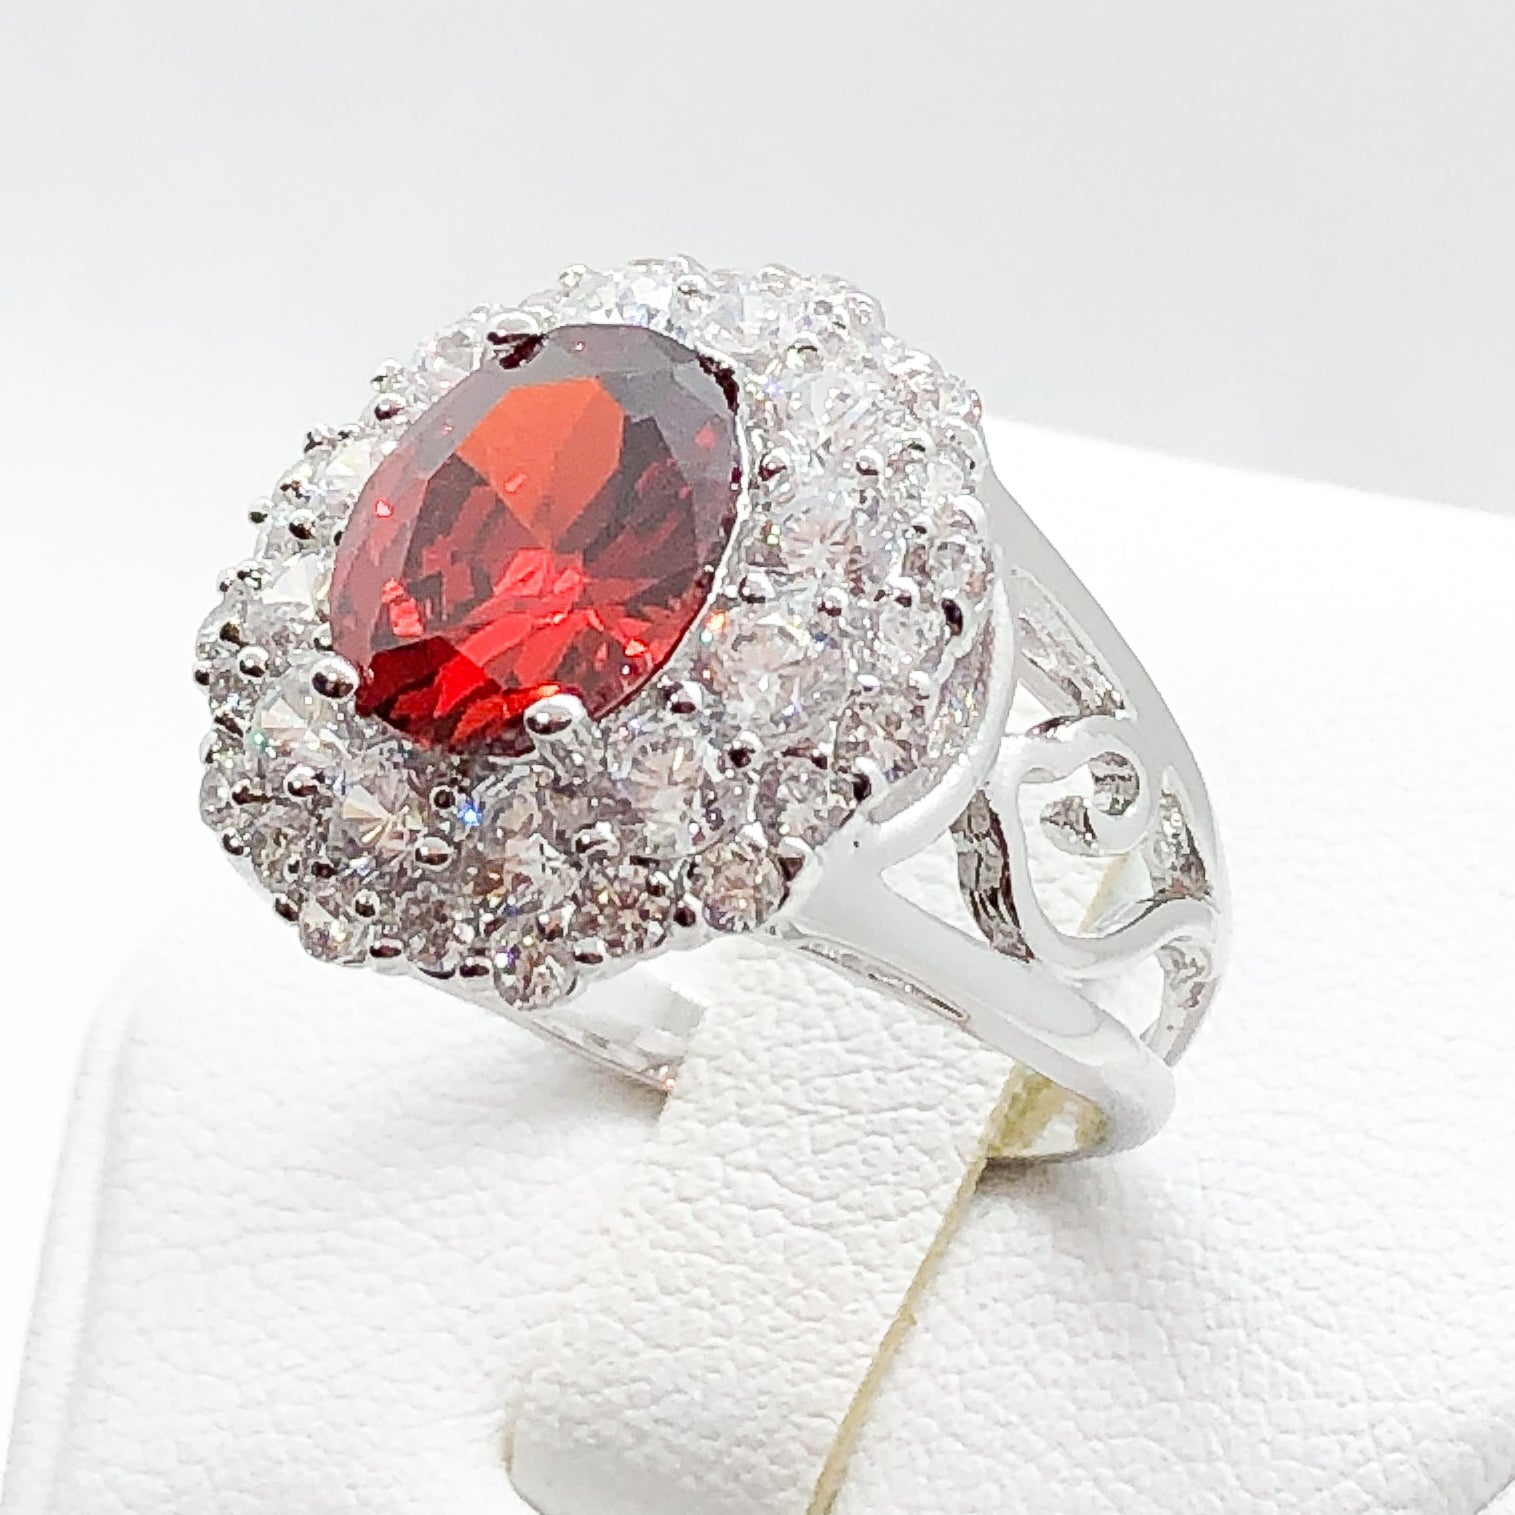 ID:R0345 Women Vintage Jewelry 18K White Gold GF Attractive Ruby Cocktail Ring With Clear Crystal Accent Anniversary Birthday Gift